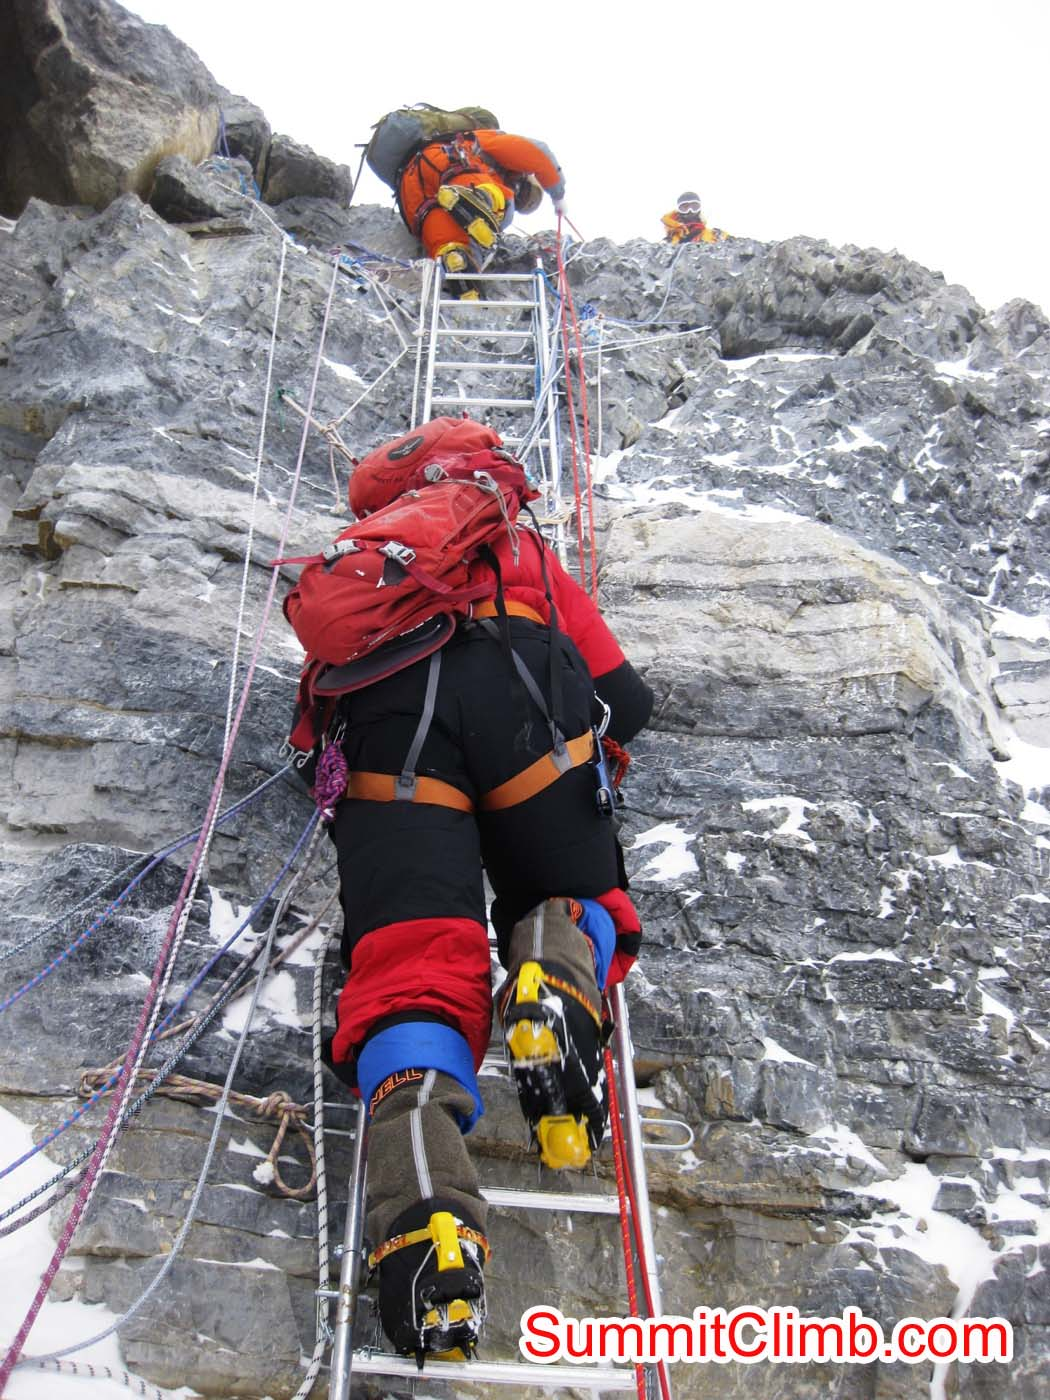 Climber descending 2nd step after Everest summit - Photo Mia Graeffe